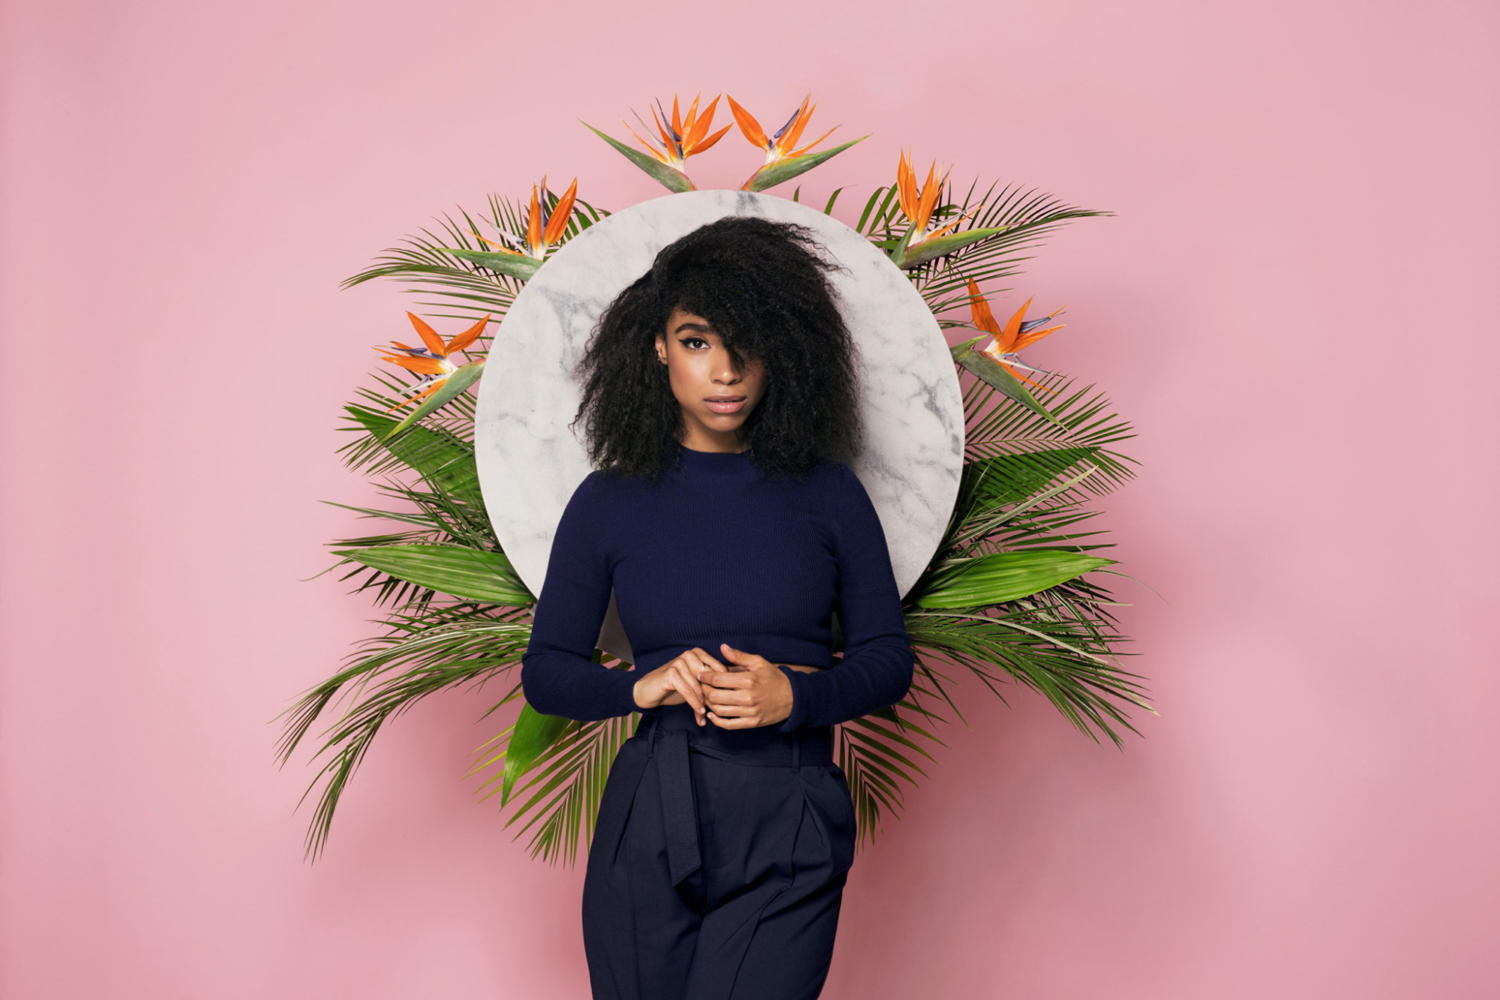 It's in her blood: The evolution of Lianne La Havas